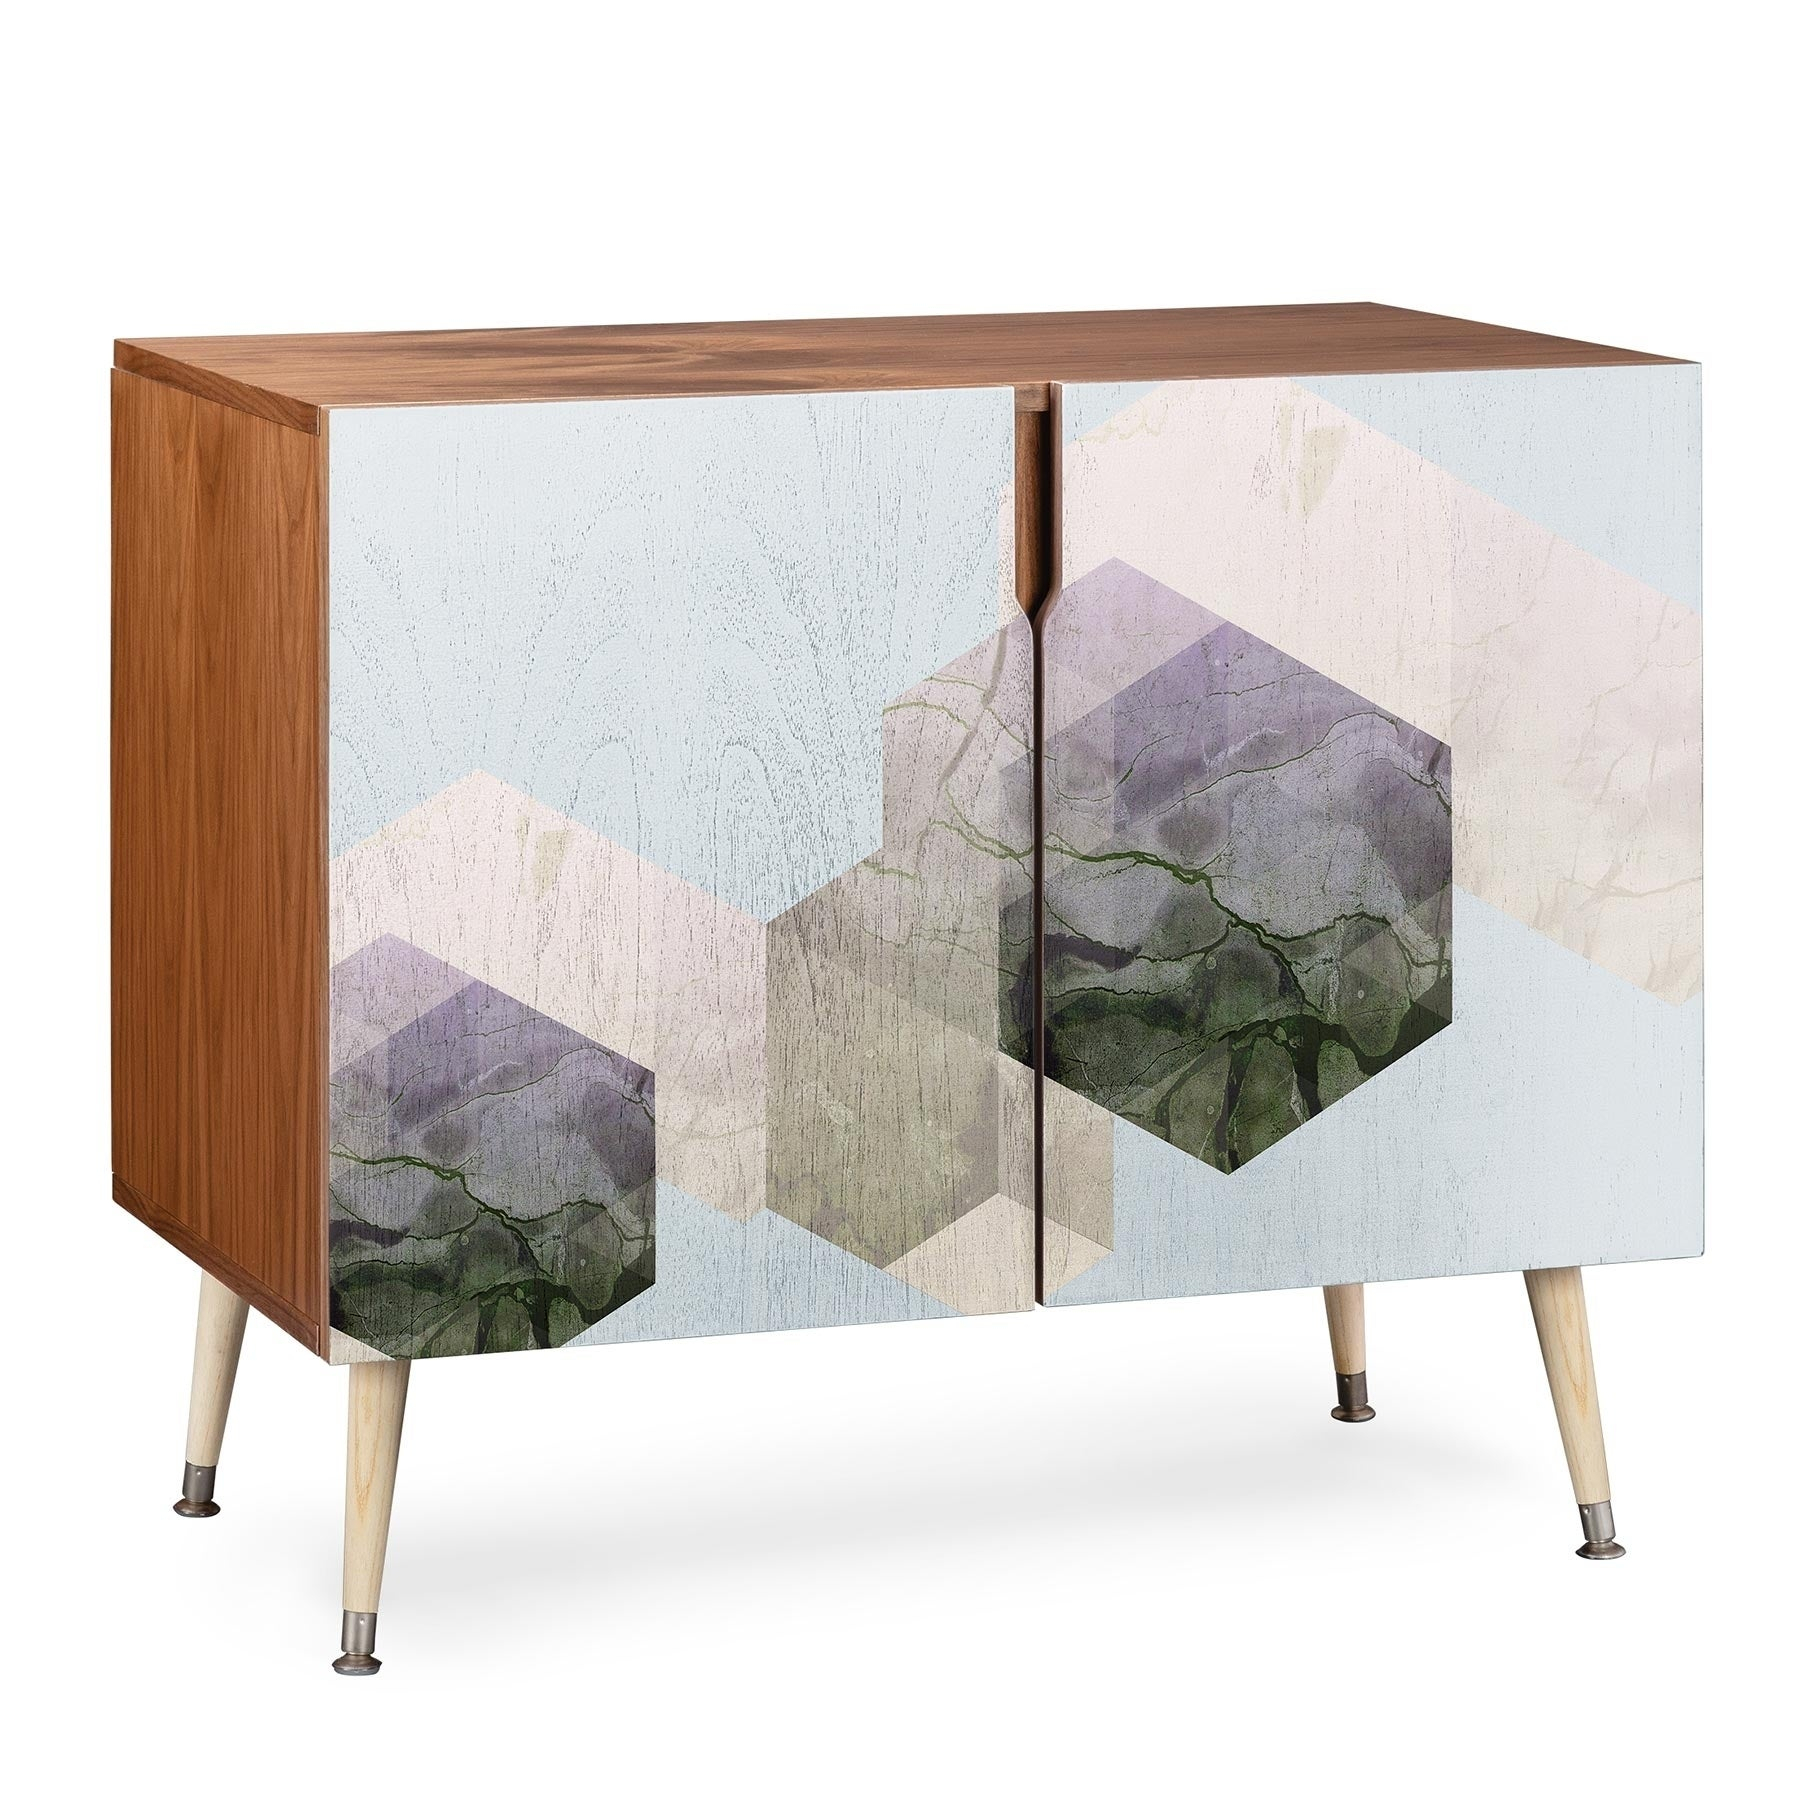 Deny Designs Emanuela Wood Geometric Patterned Credenza Pertaining To Wooden Deconstruction Credenzas (Gallery 2 of 30)